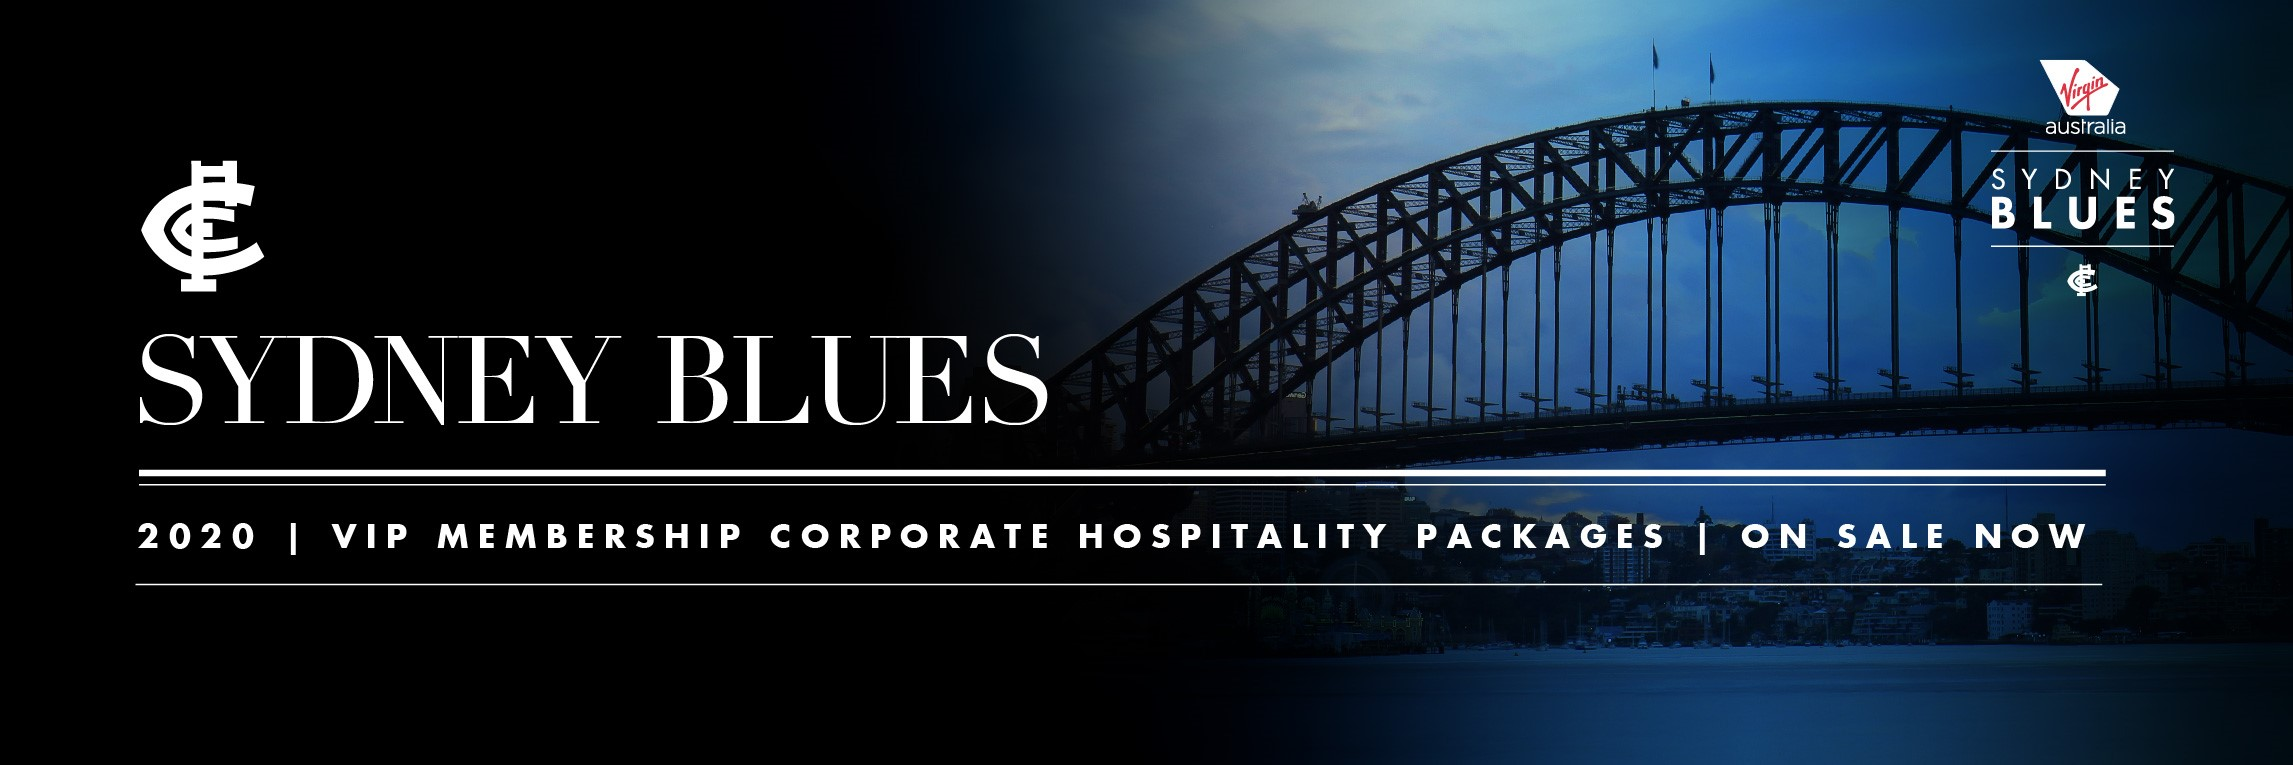 Sydney Blues Tile